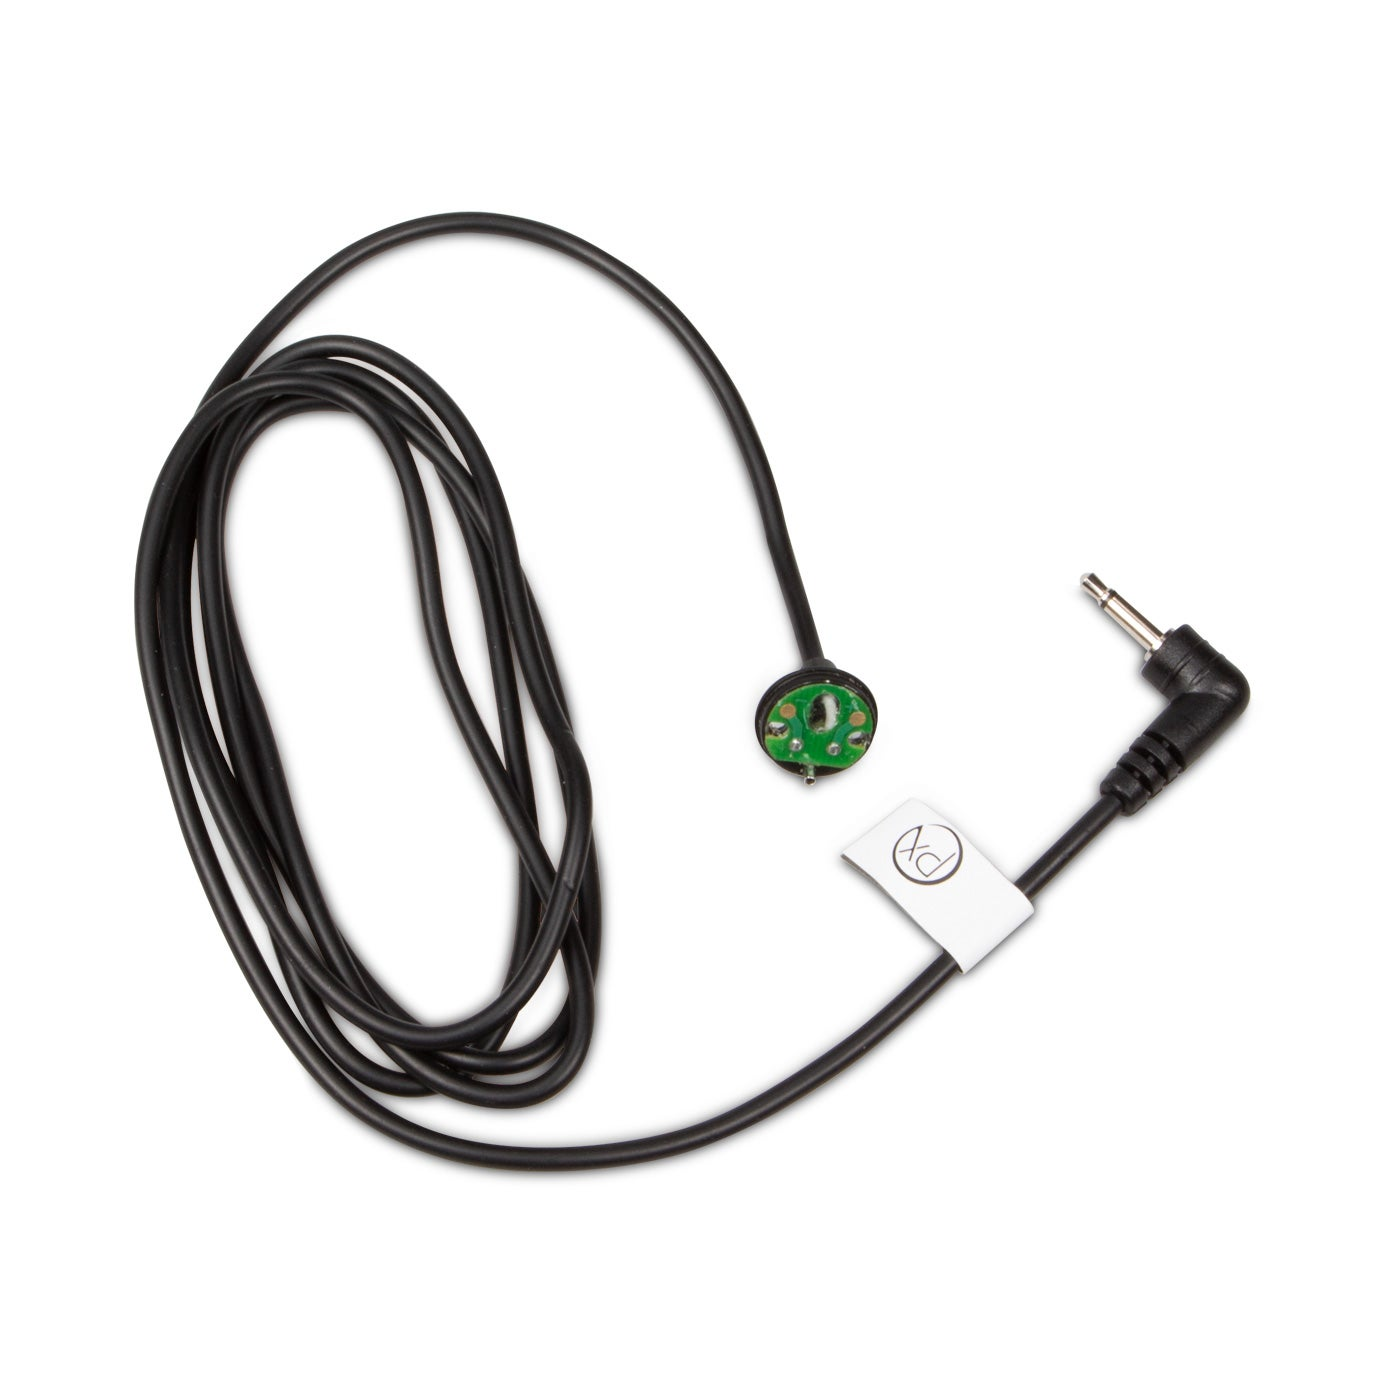 Dental Headlight - Microline Mini Replacement Cable